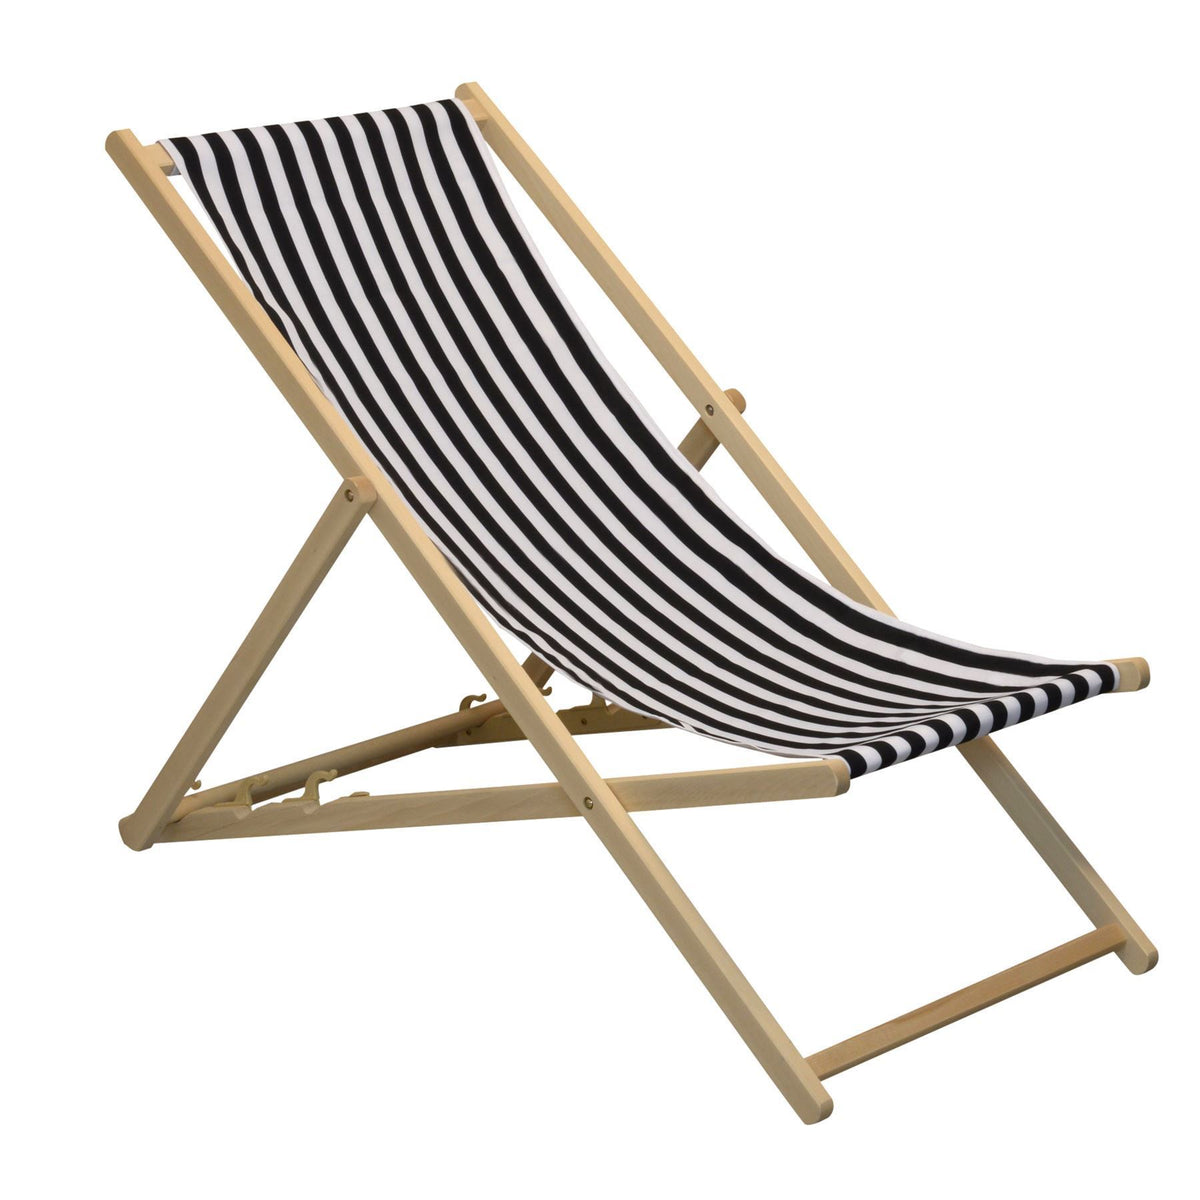 Harbour Housewares Beach Deck Chair - Black/White Stripes with Beech Wood Frame